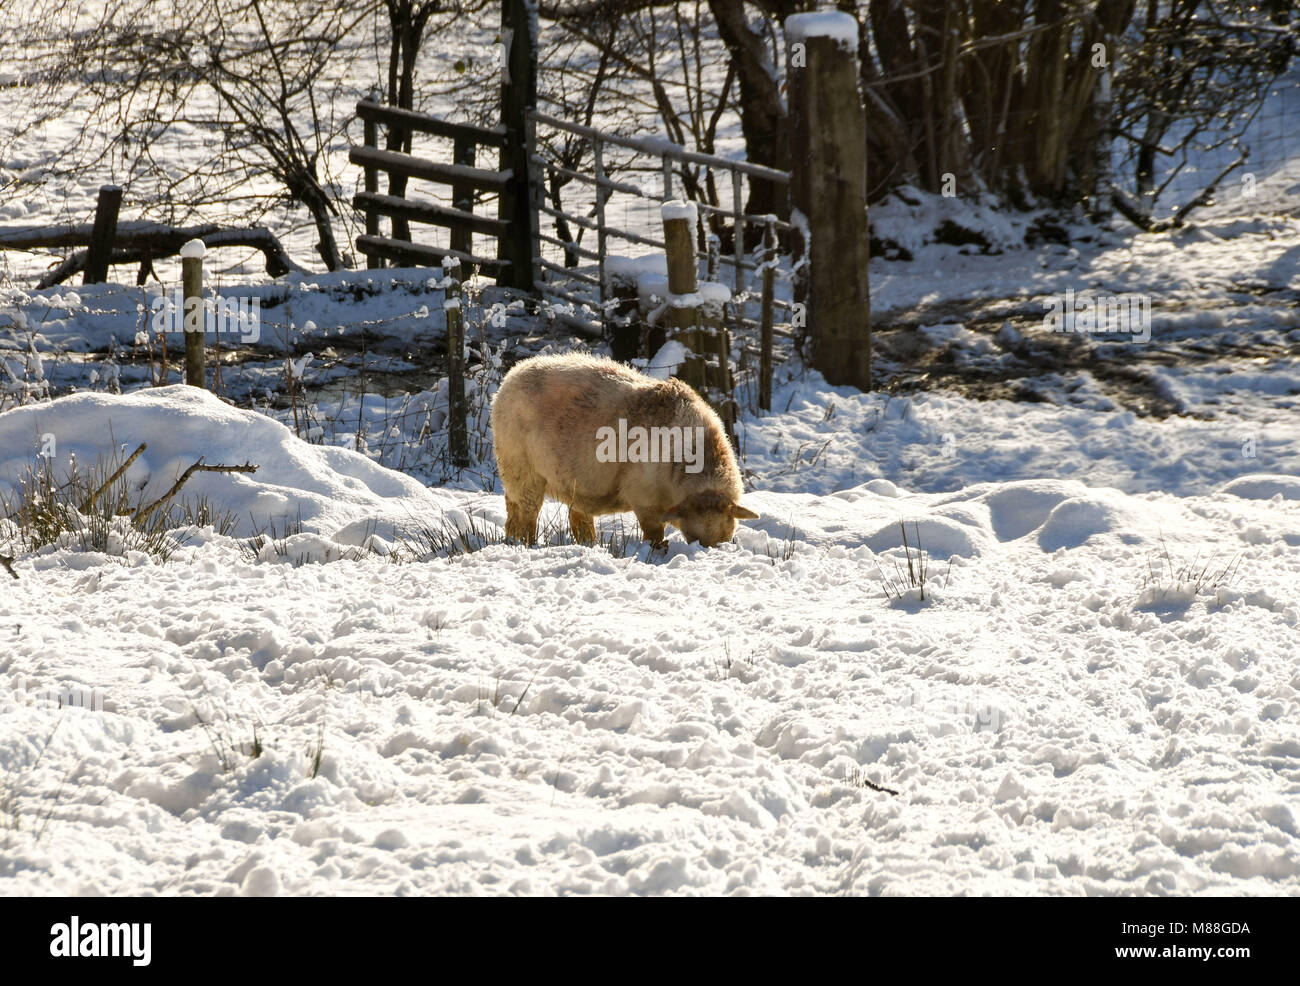 Sheep feeding in a snow covered field in winter - Stock Image